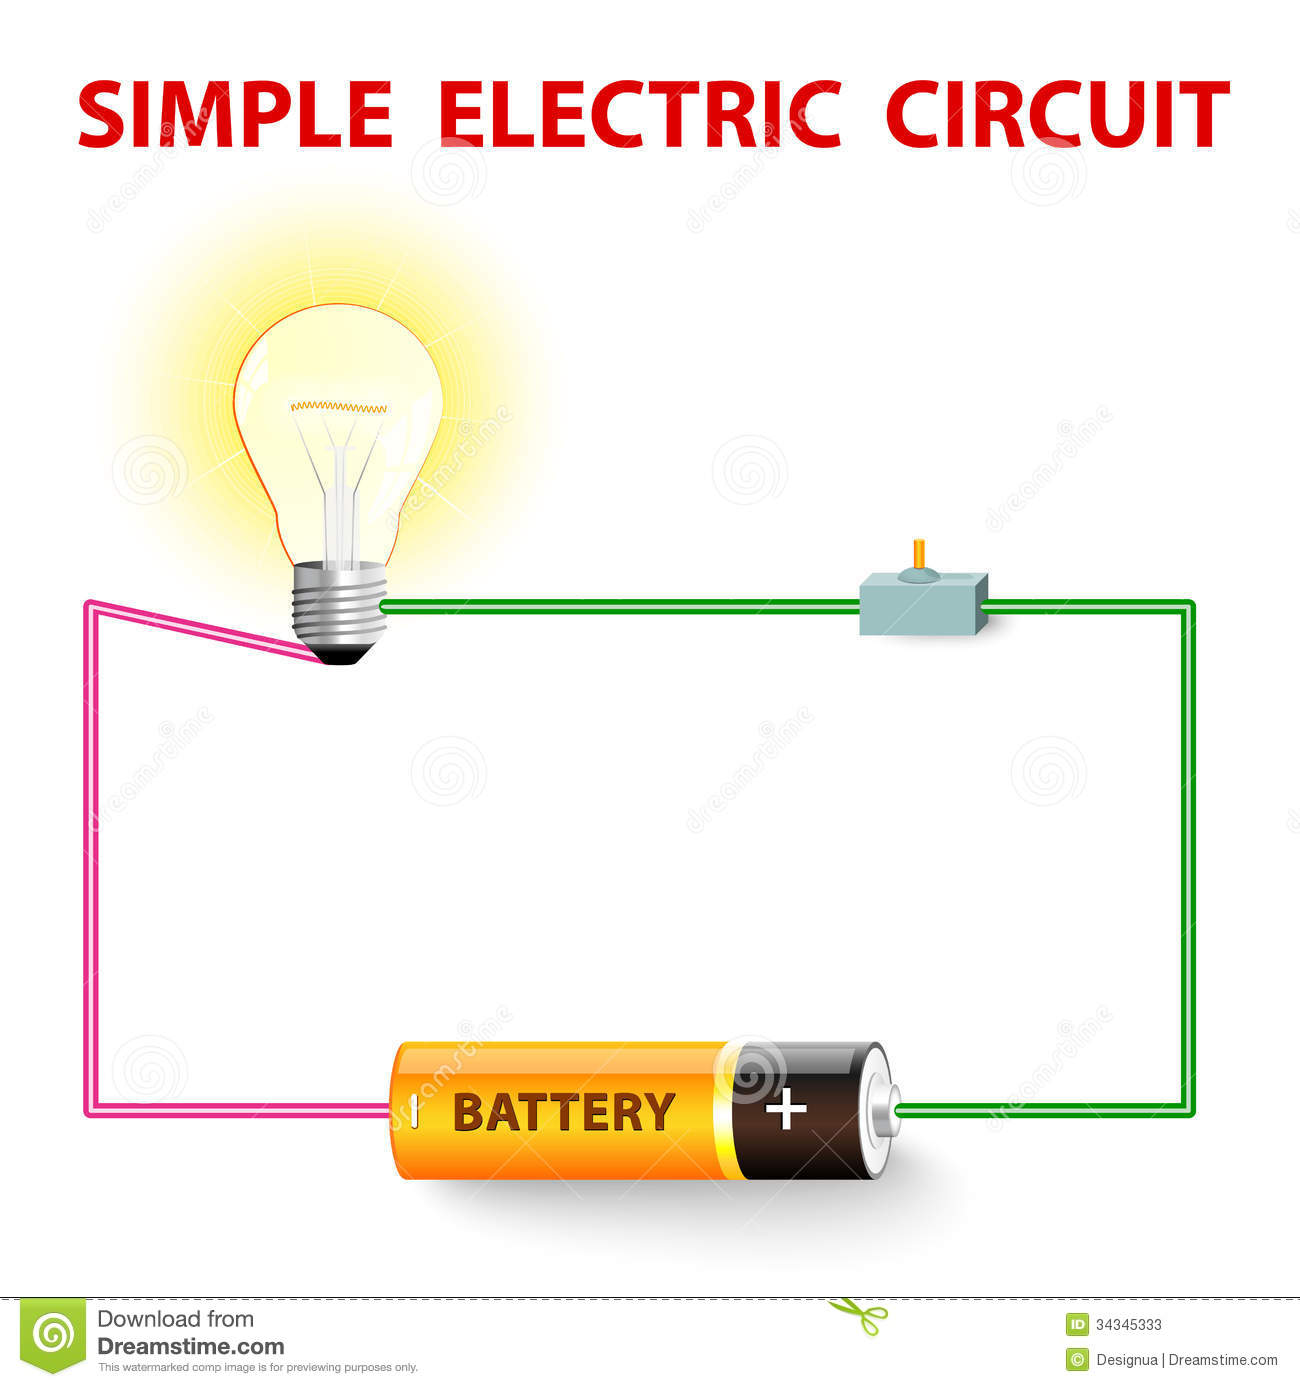 simple electrical wiring diagrams images 2006 ford f150 trailer diagram a electric circuit stock vector illustration of closed